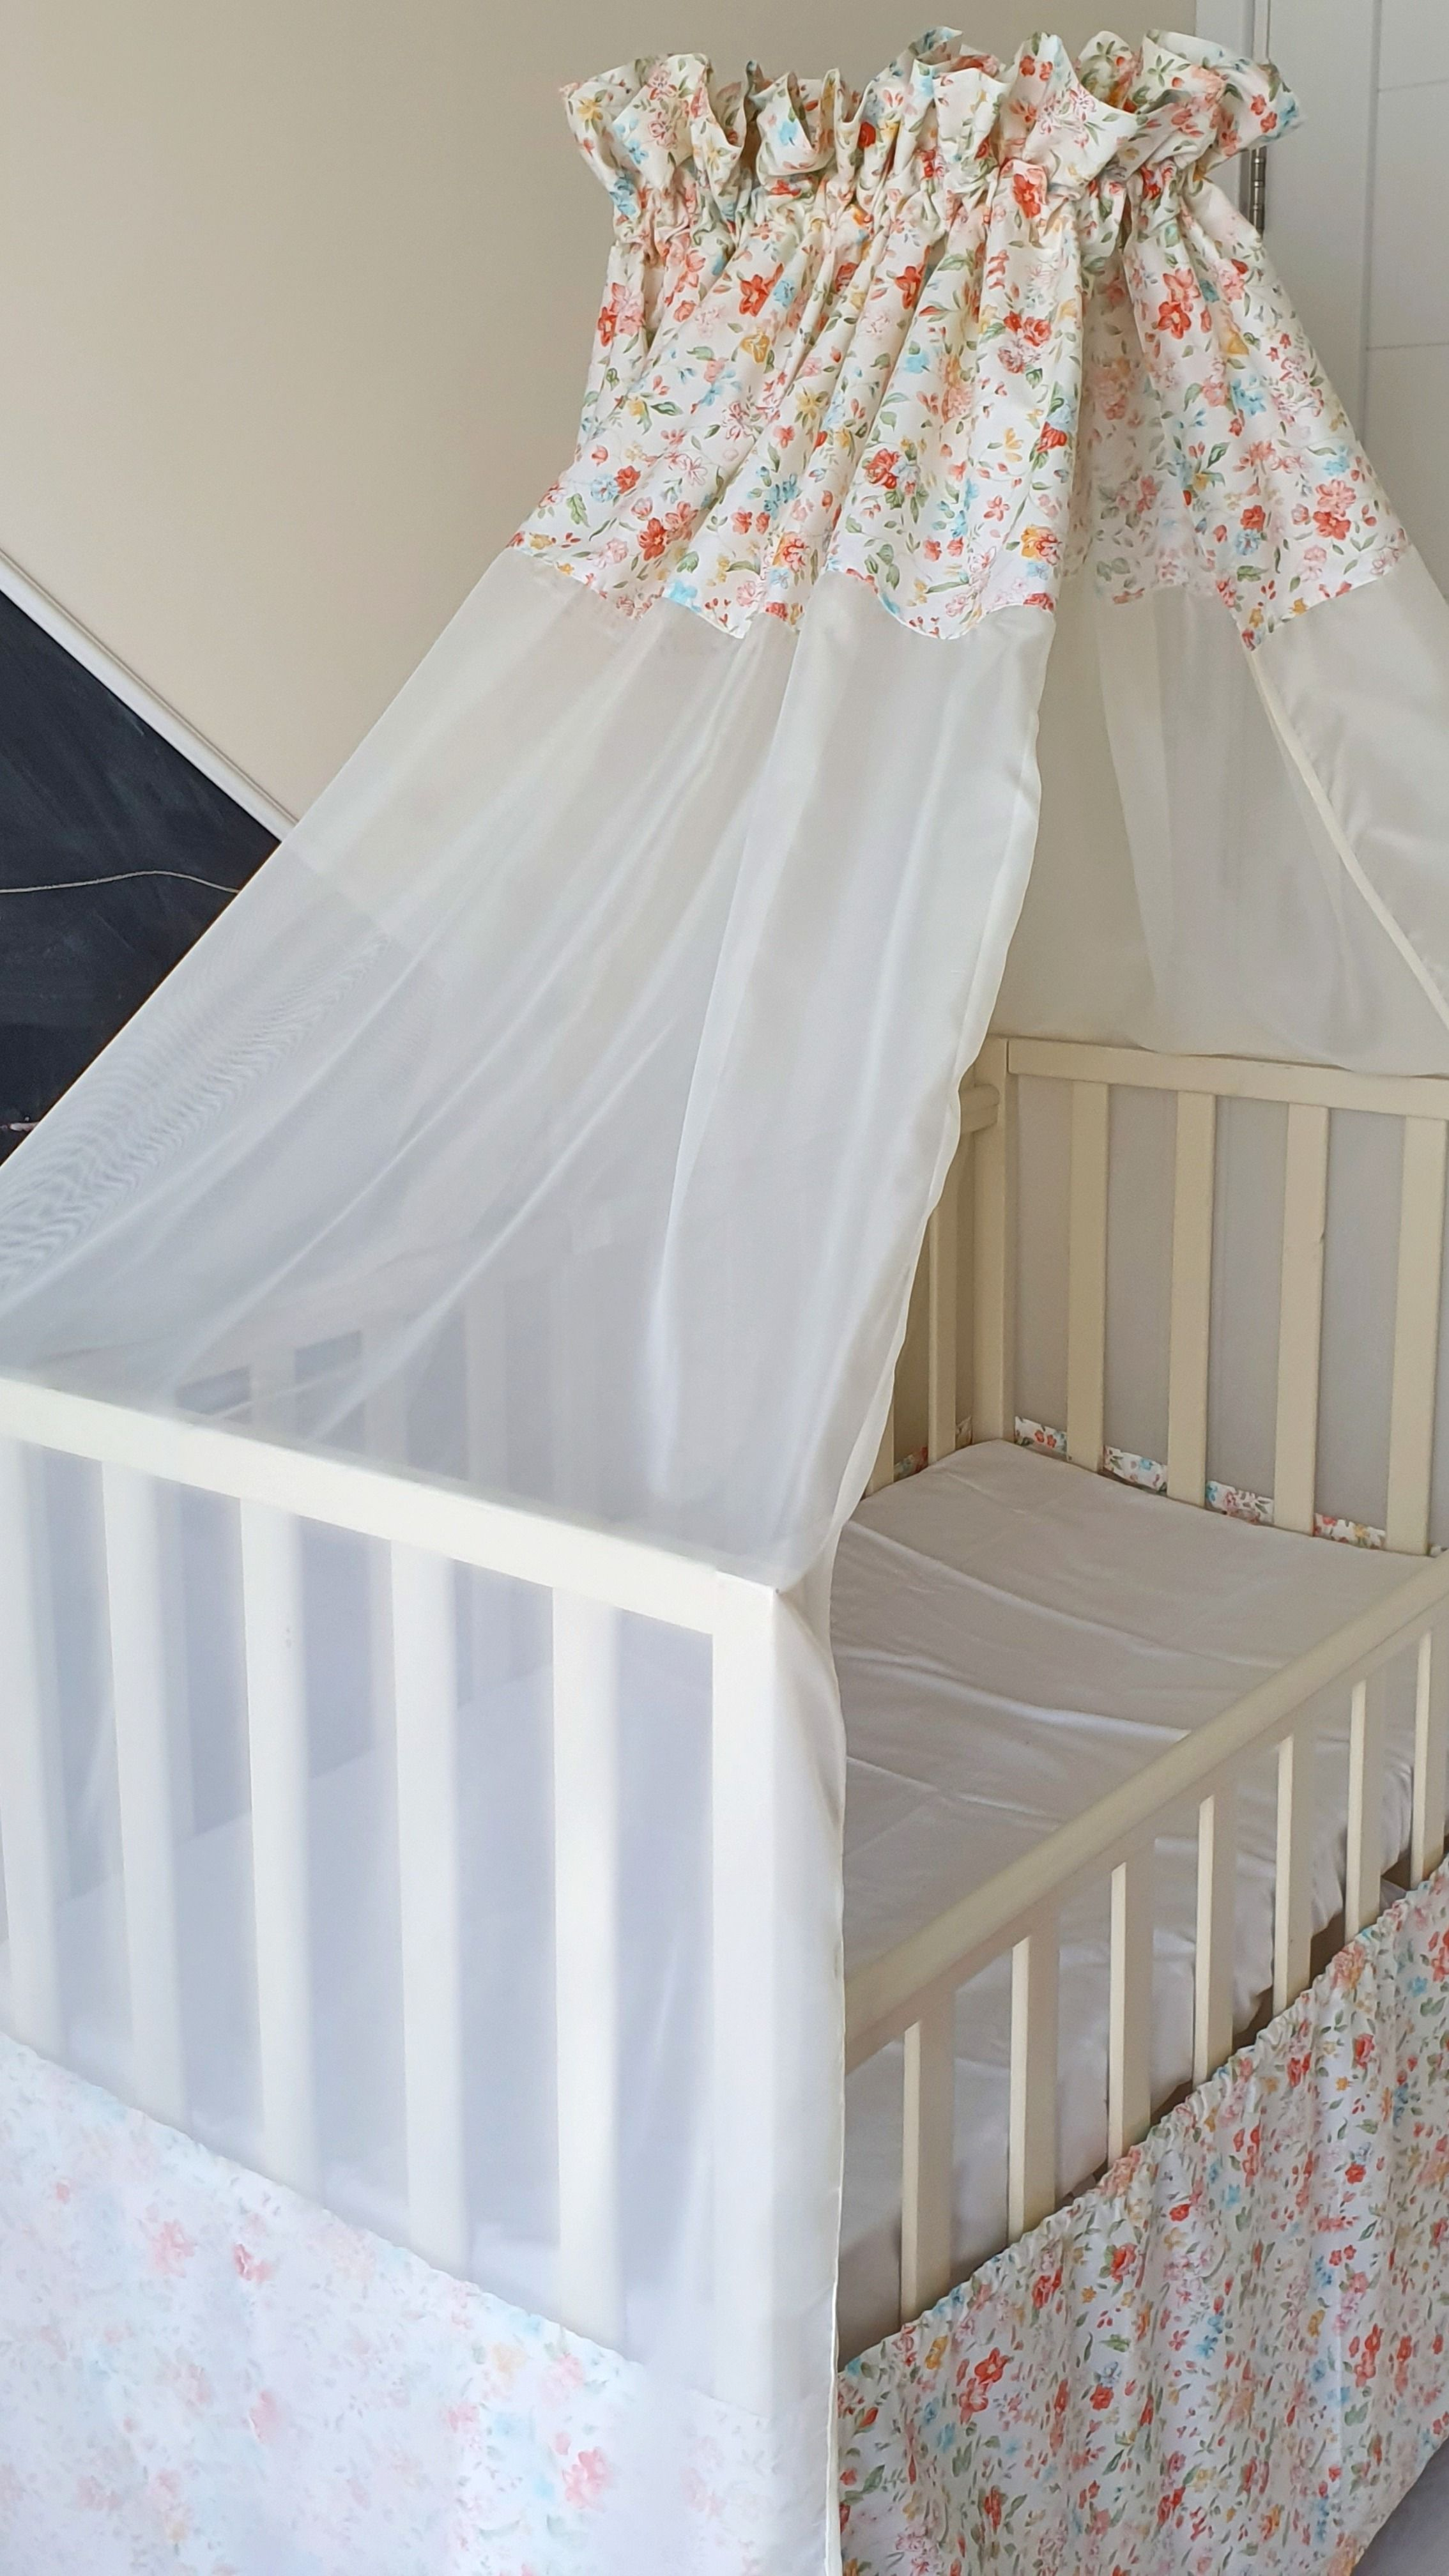 Floral Canopy Crib Canopy Bed Canopy Hanging Canopy Shabby Chic Nursery Decor Baby Shower Gift Nursery Canopy Cotton Crib Canopy Crib Canopy